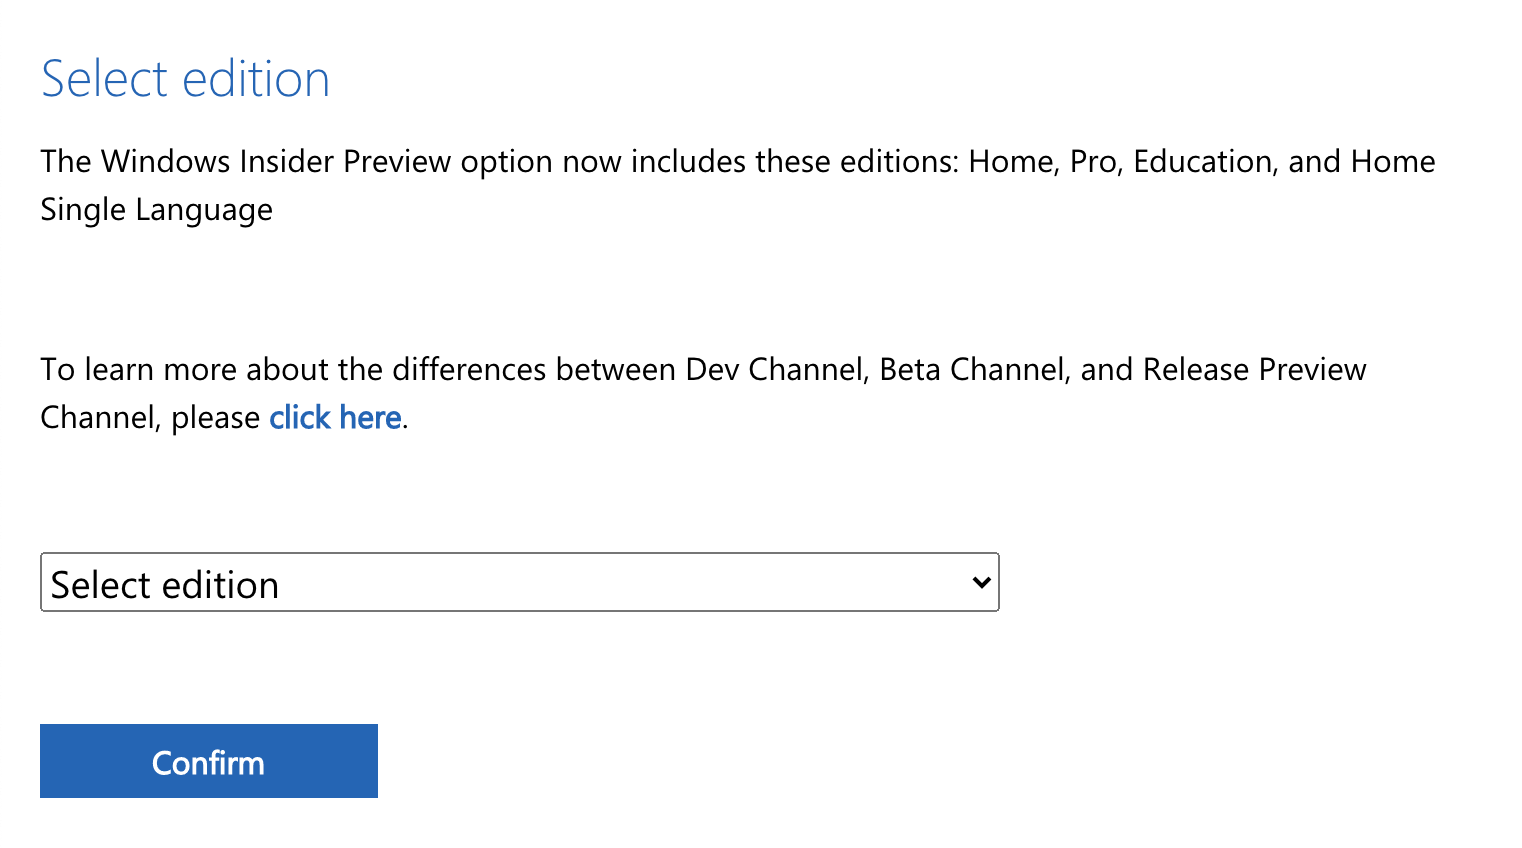 [Head to this page](https://www.microsoft.com/en-us/software-download/windowsinsiderpreviewiso?rfs=1) and then select a preview build